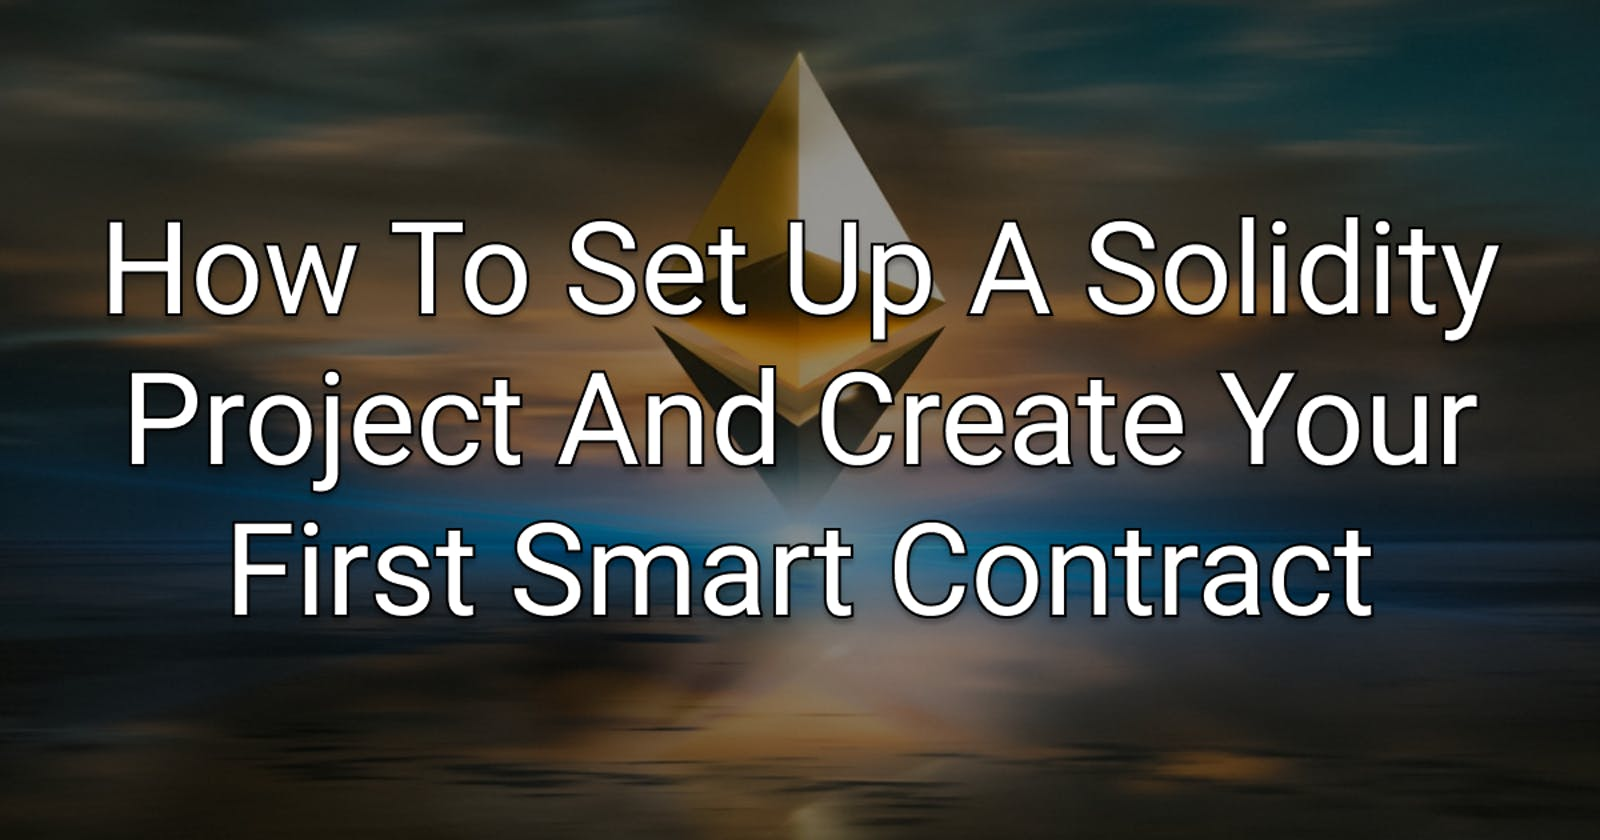 How To Set Up A Solidity Project And Create Your First Smart Contract